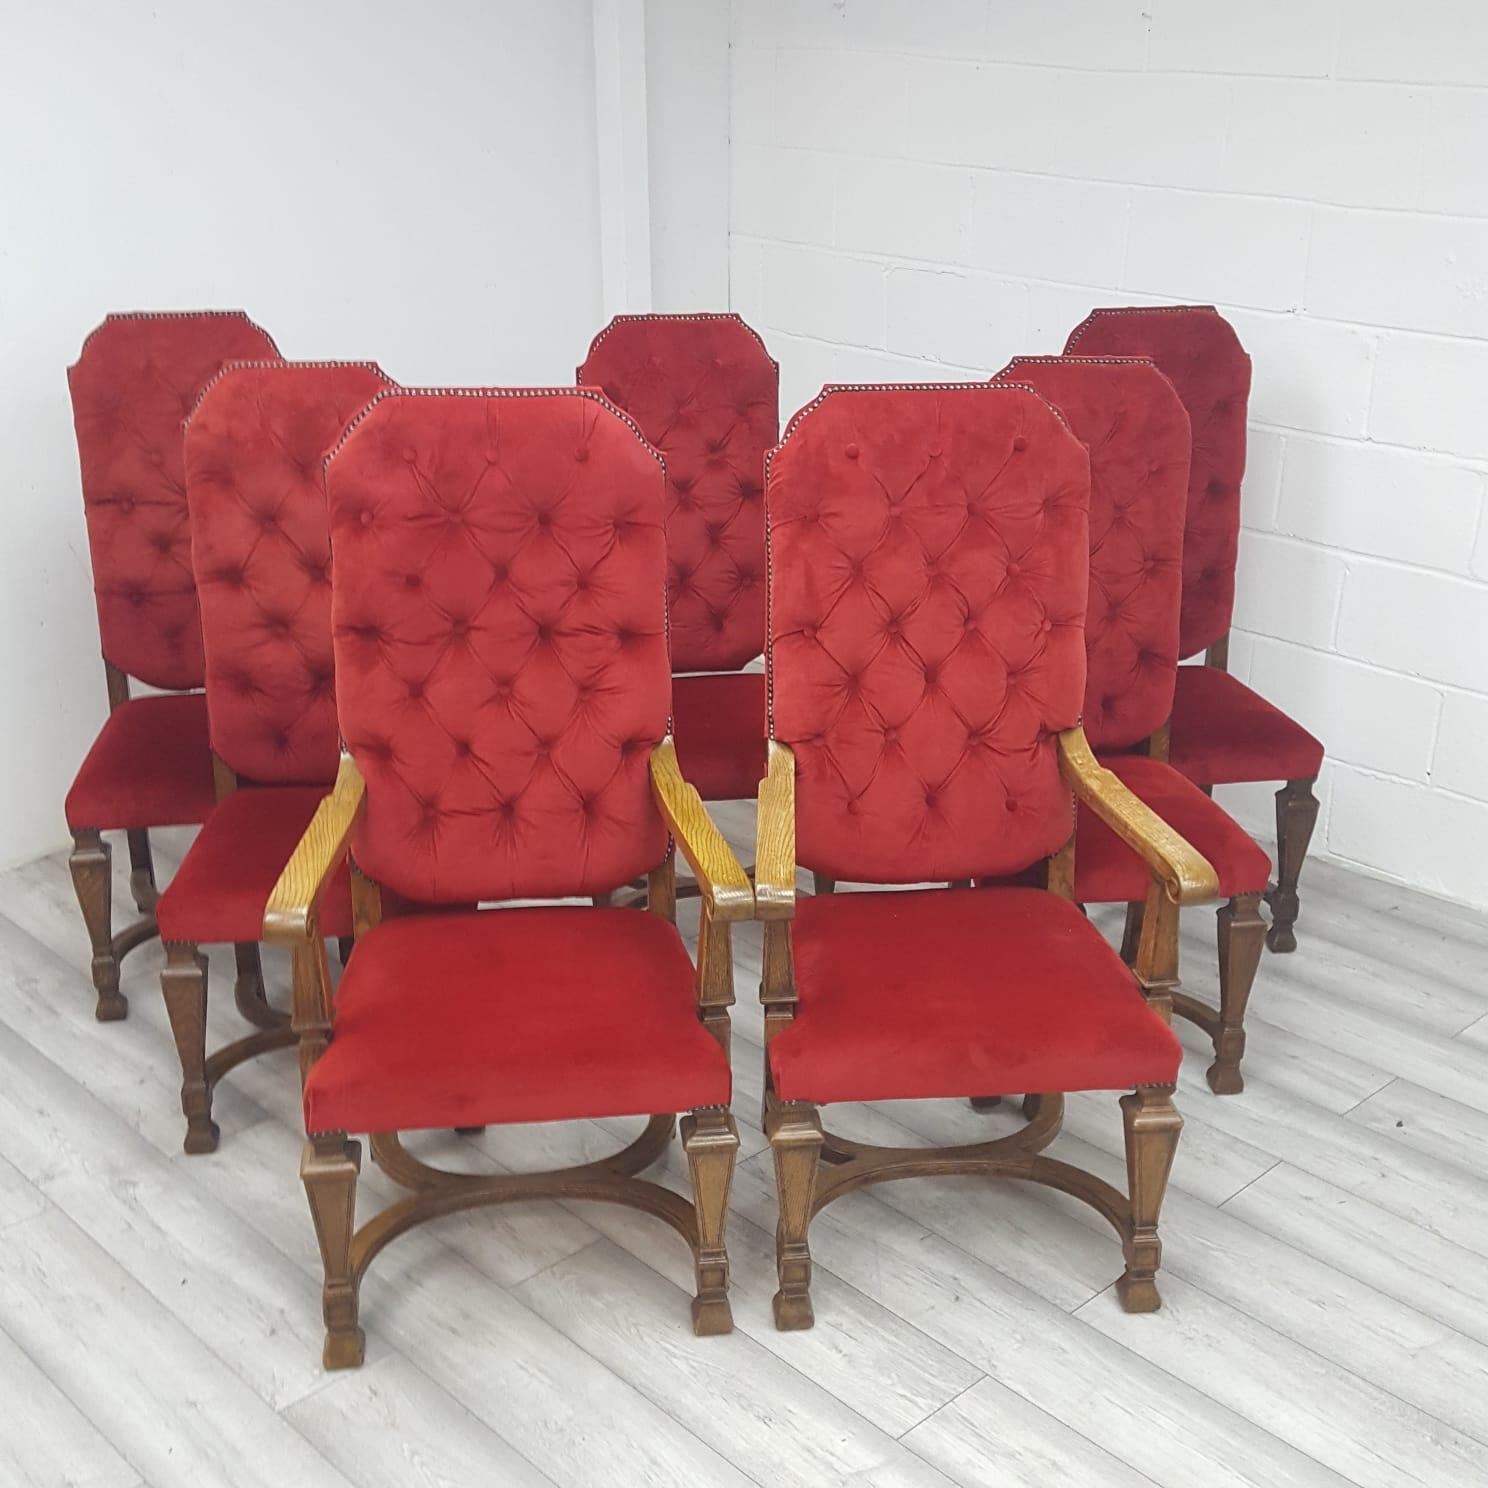 used oak dining chairs